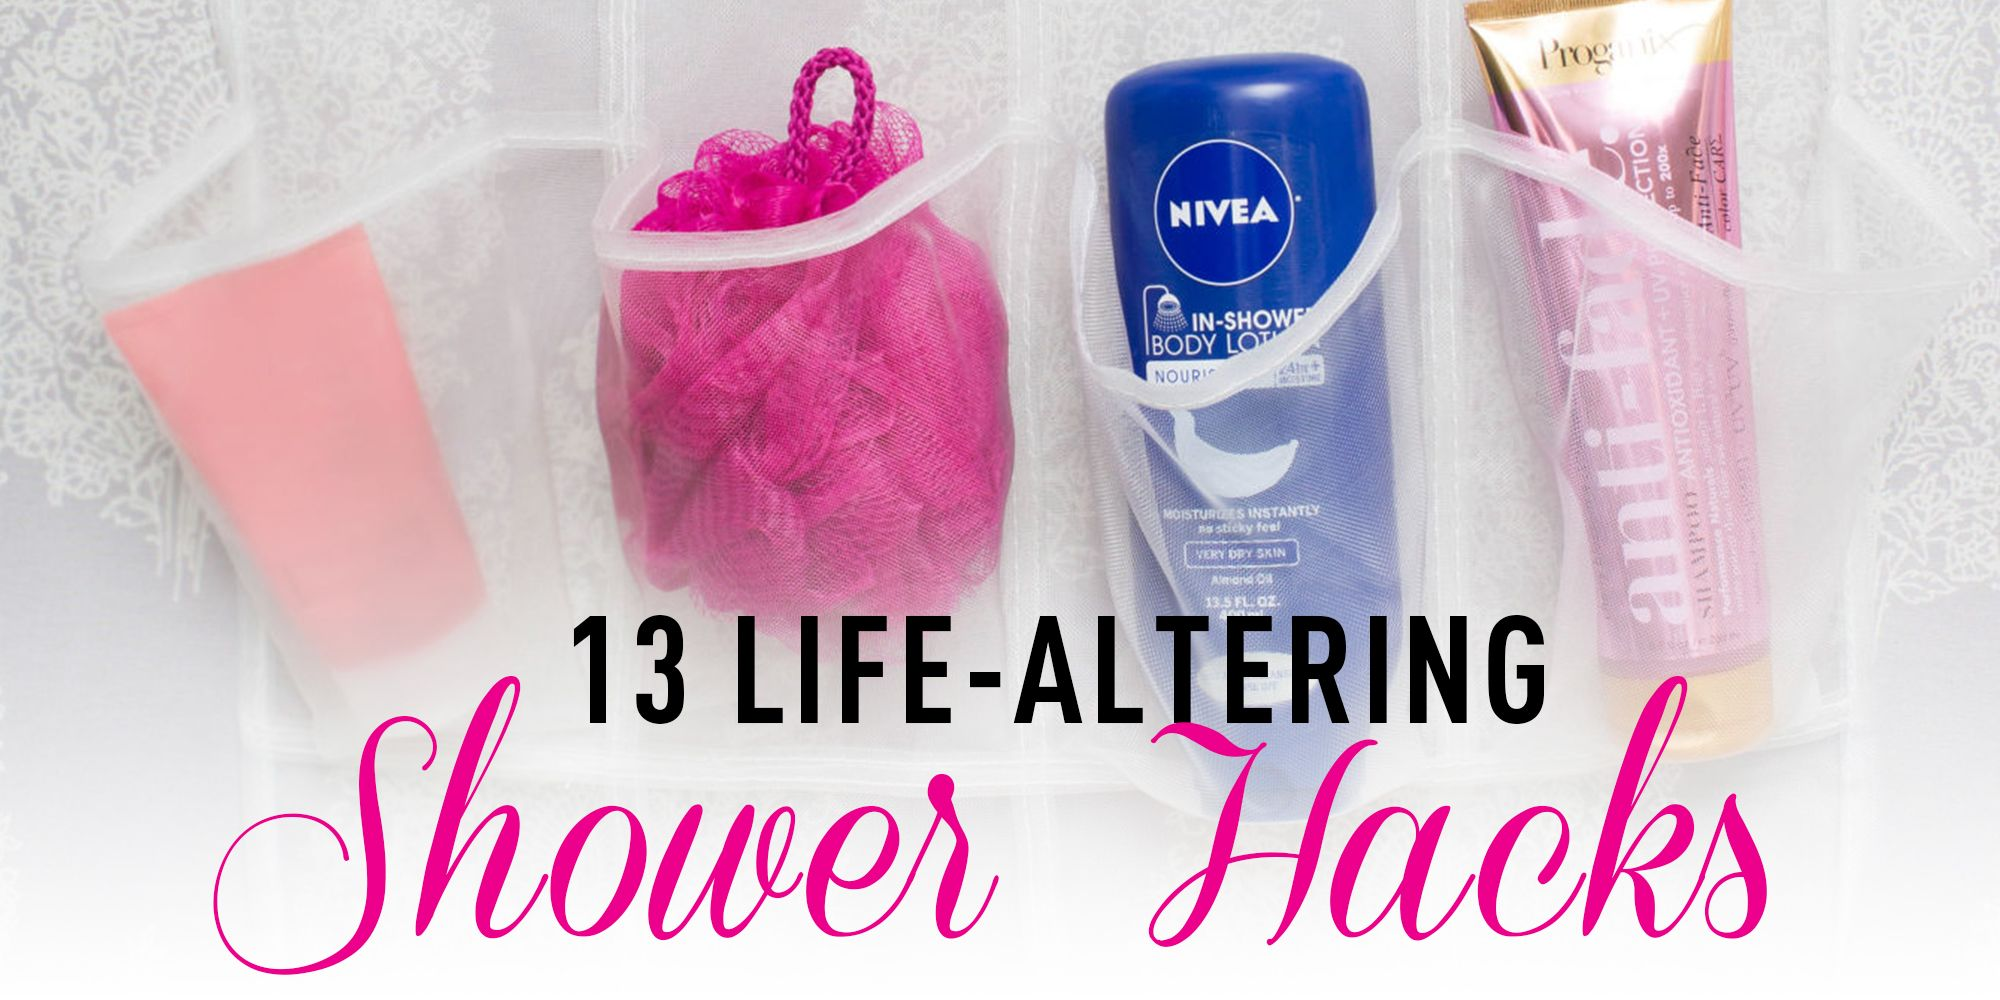 13 Life Altering Shower Hacks